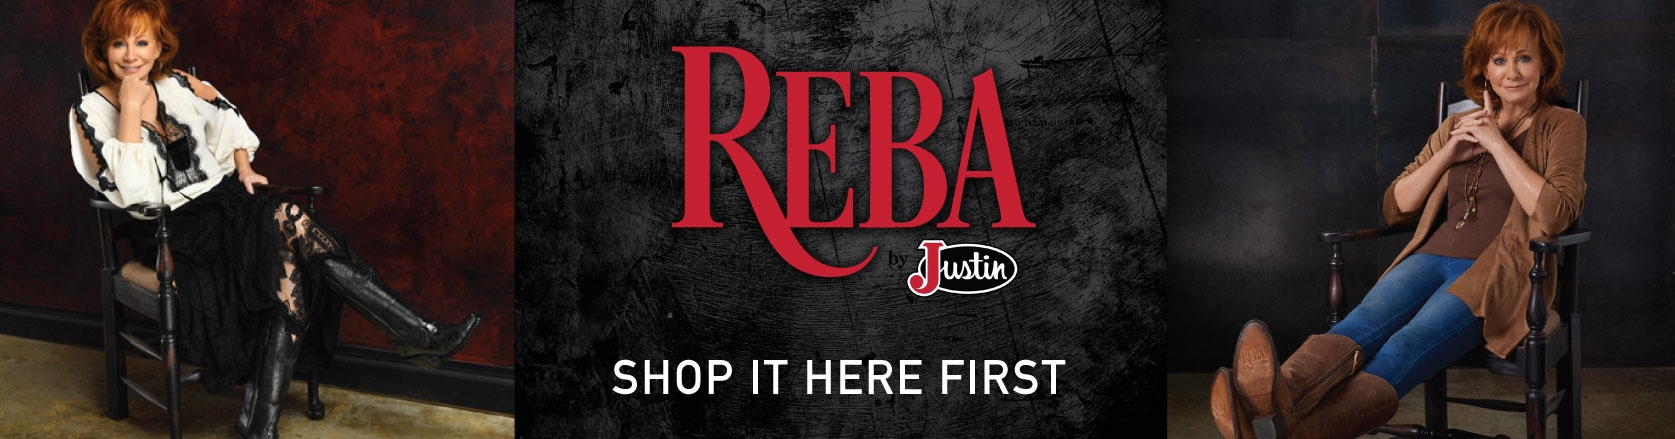 REBA by Justin Boots